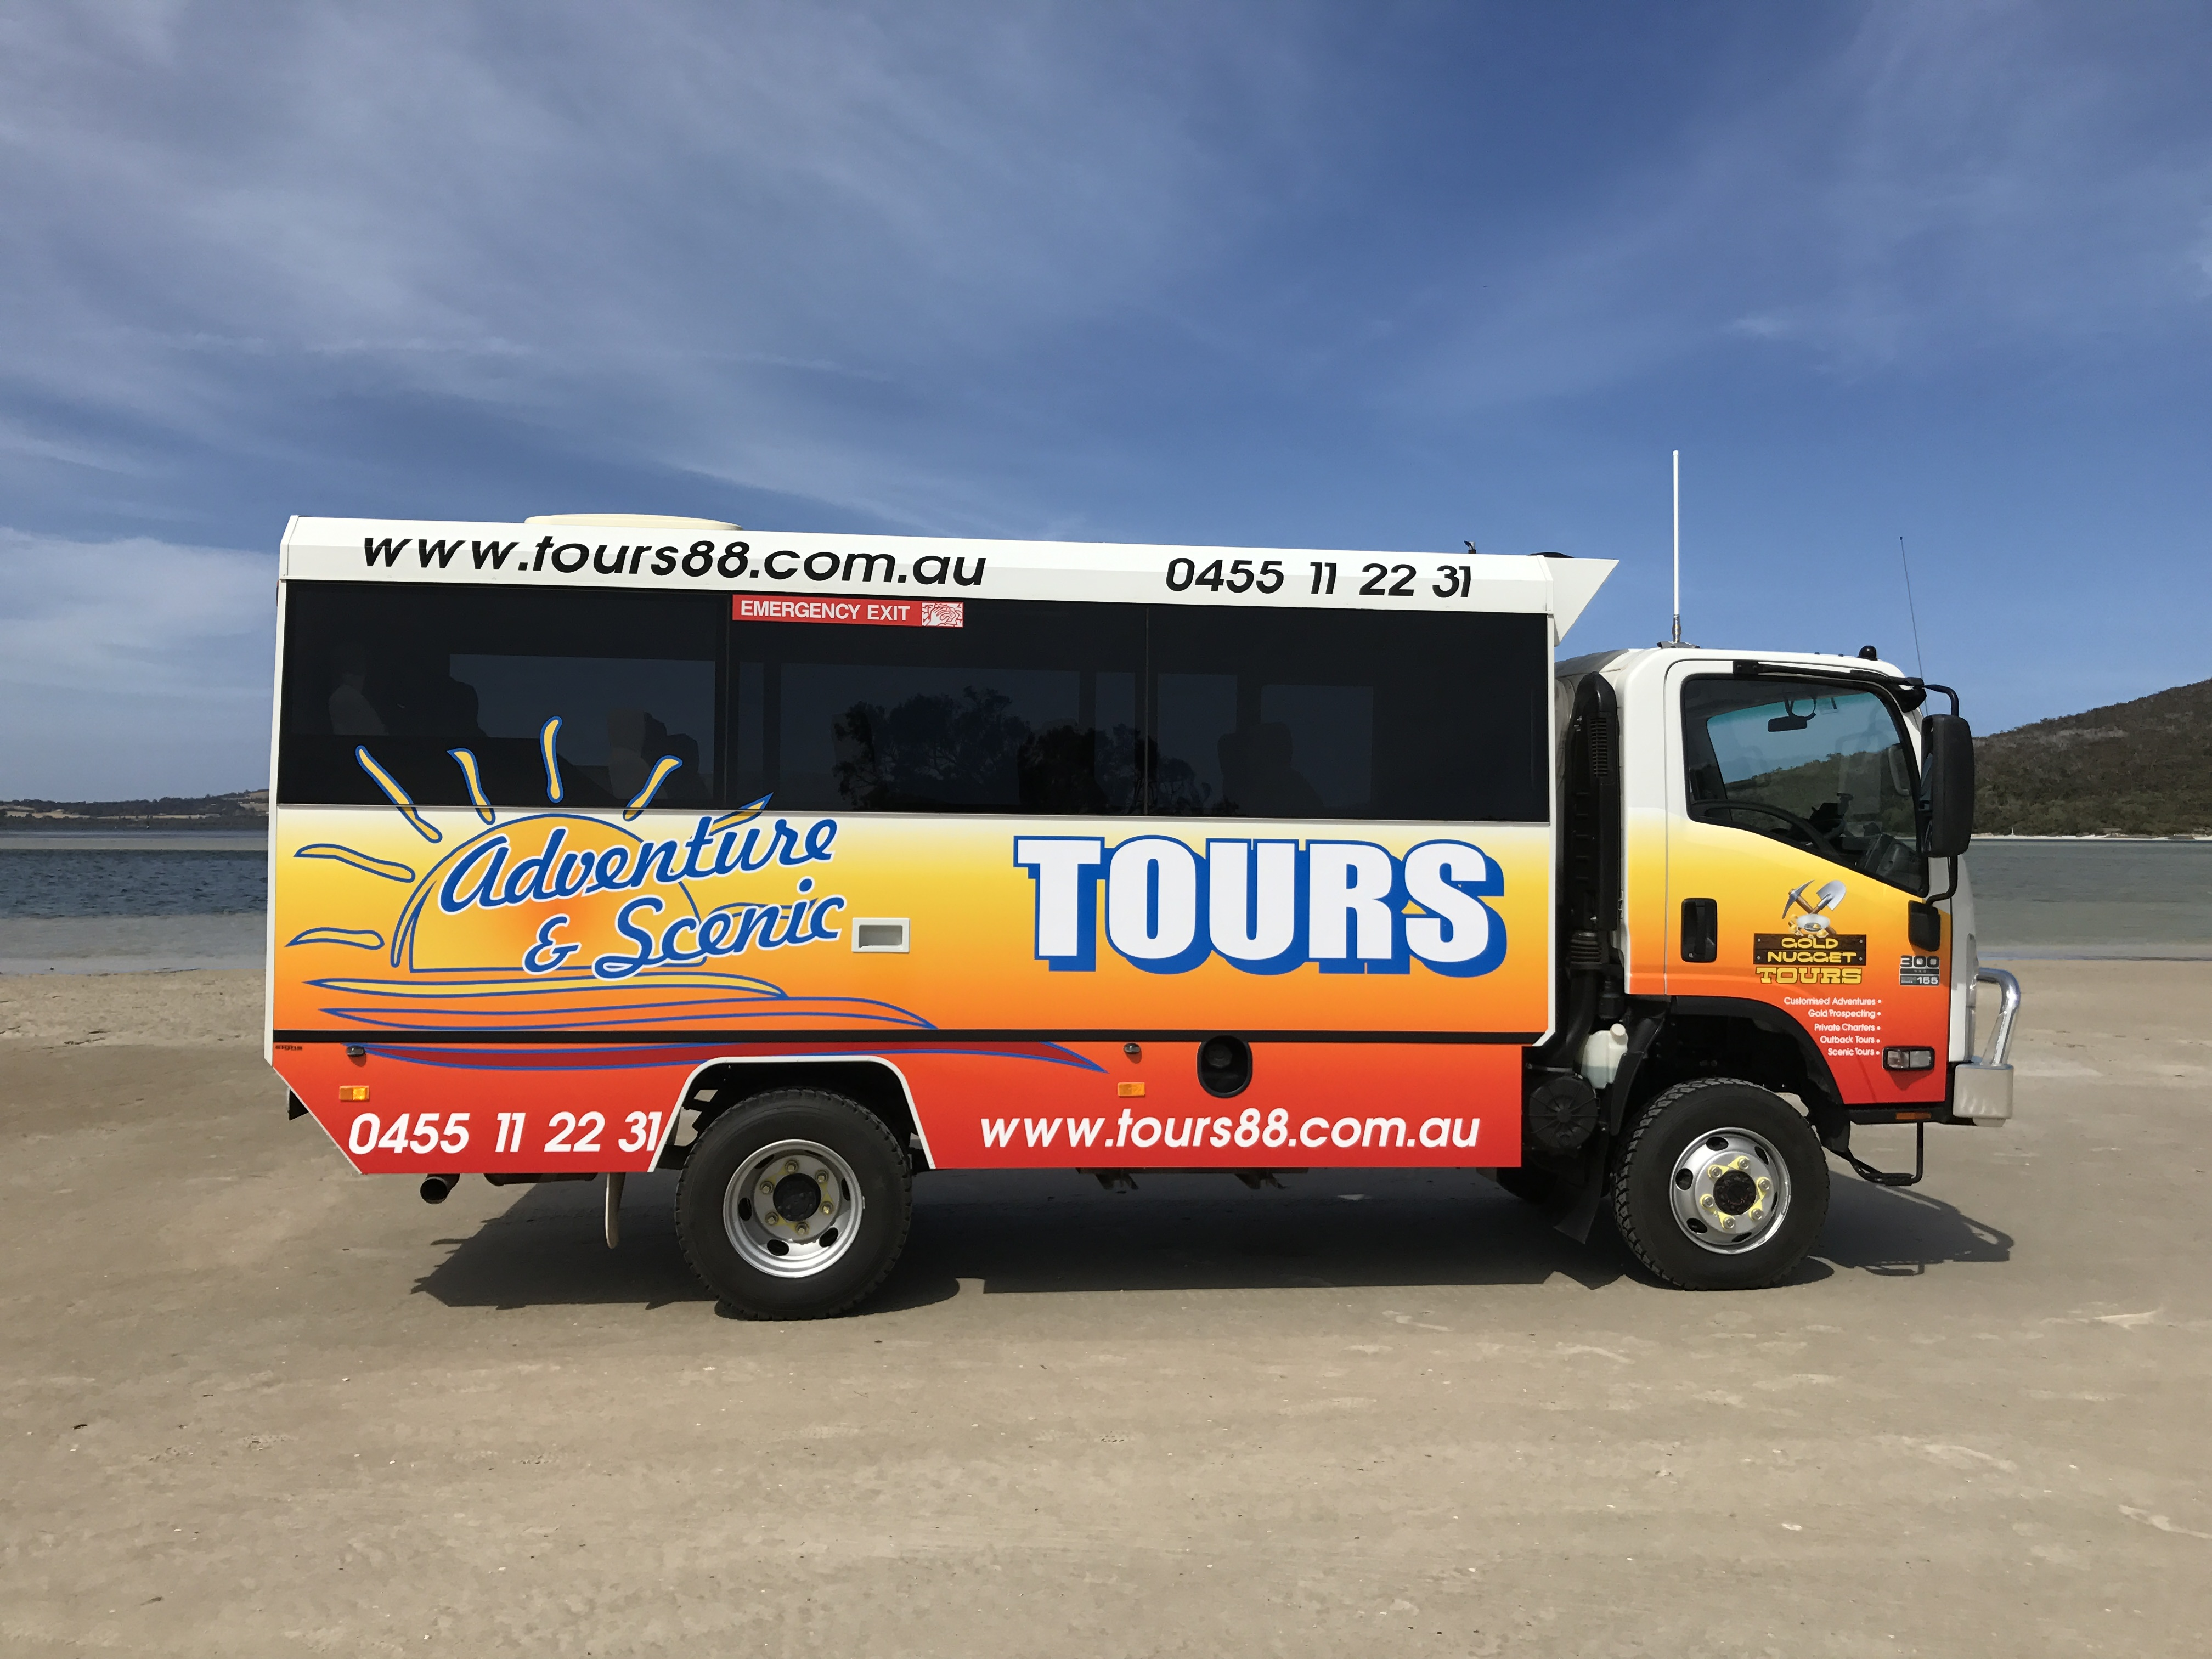 Adventure and scenic tours bus